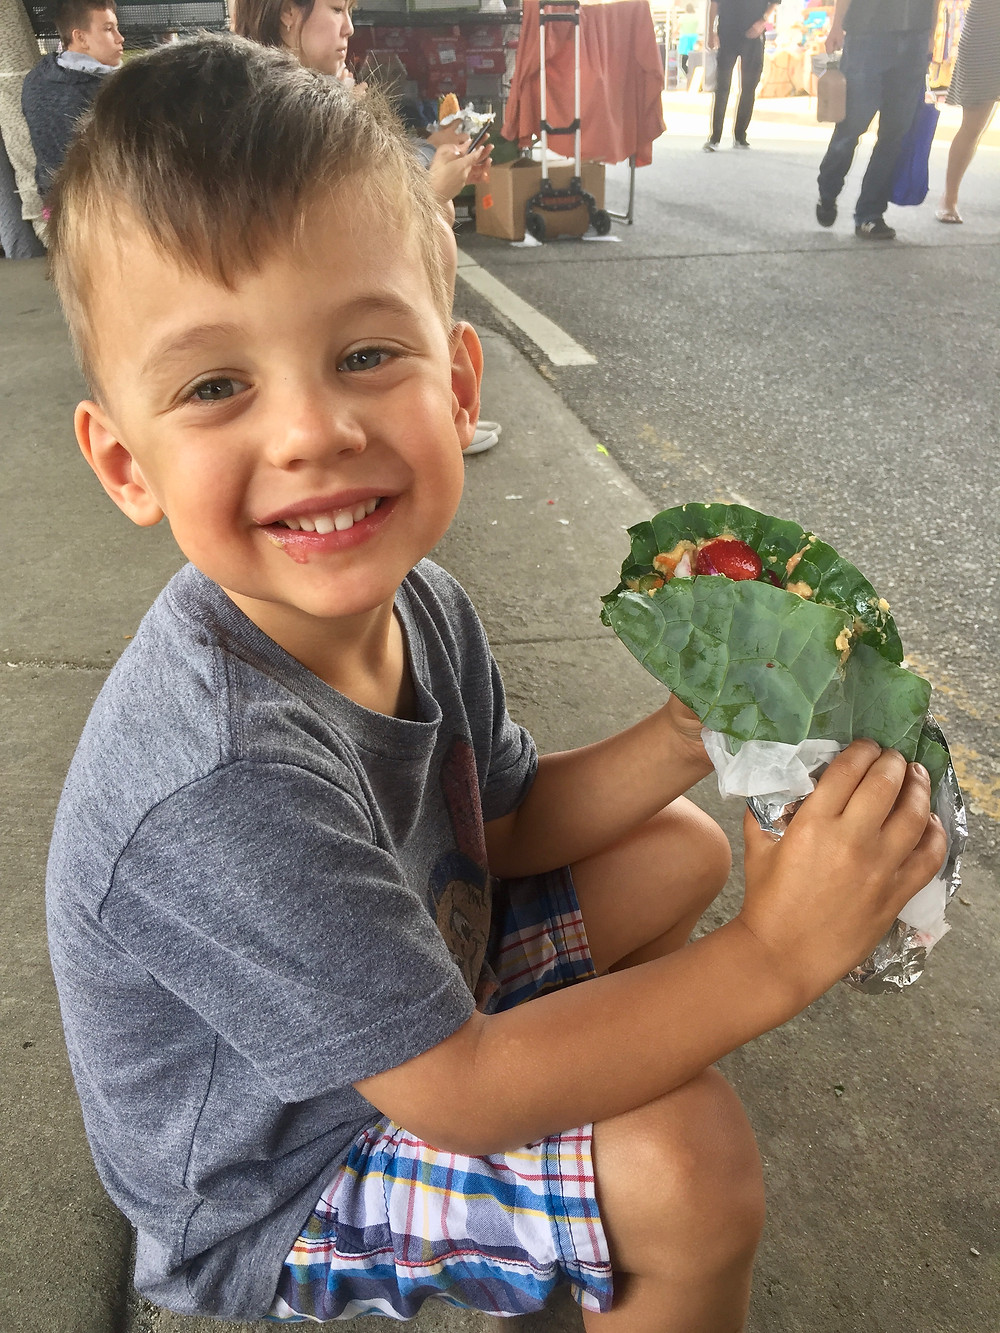 Kid eating at farmers market